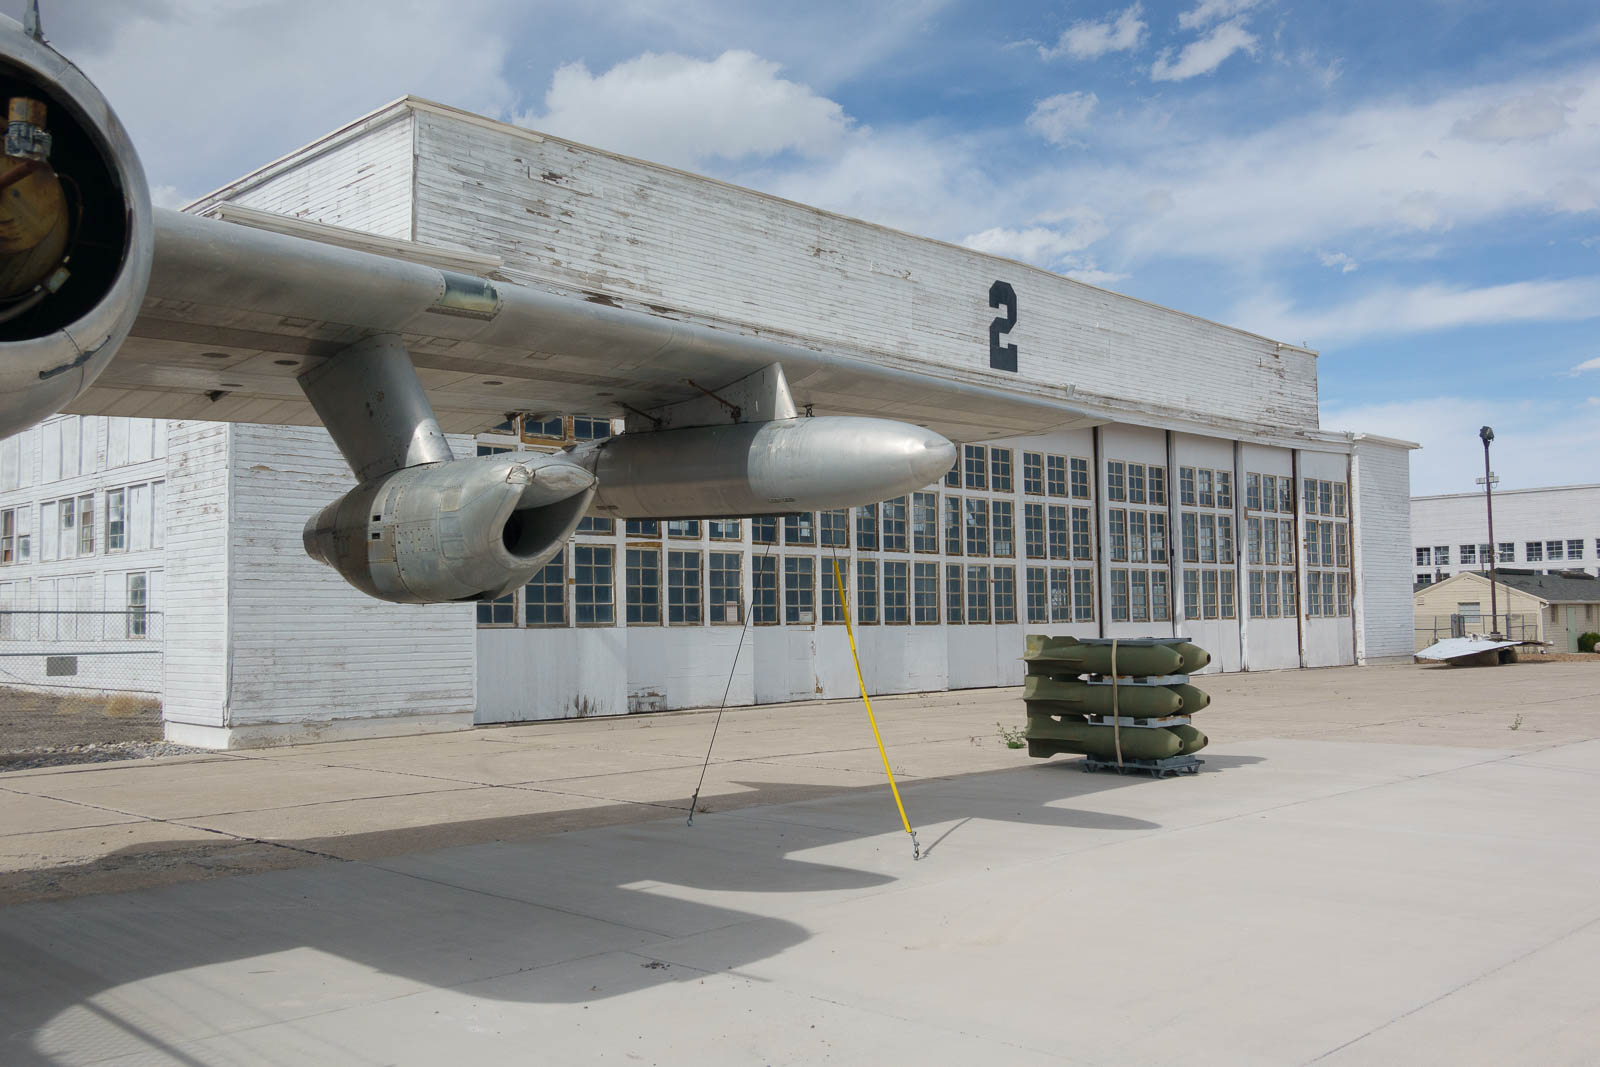 Decommissioned Air Force base at Wendover